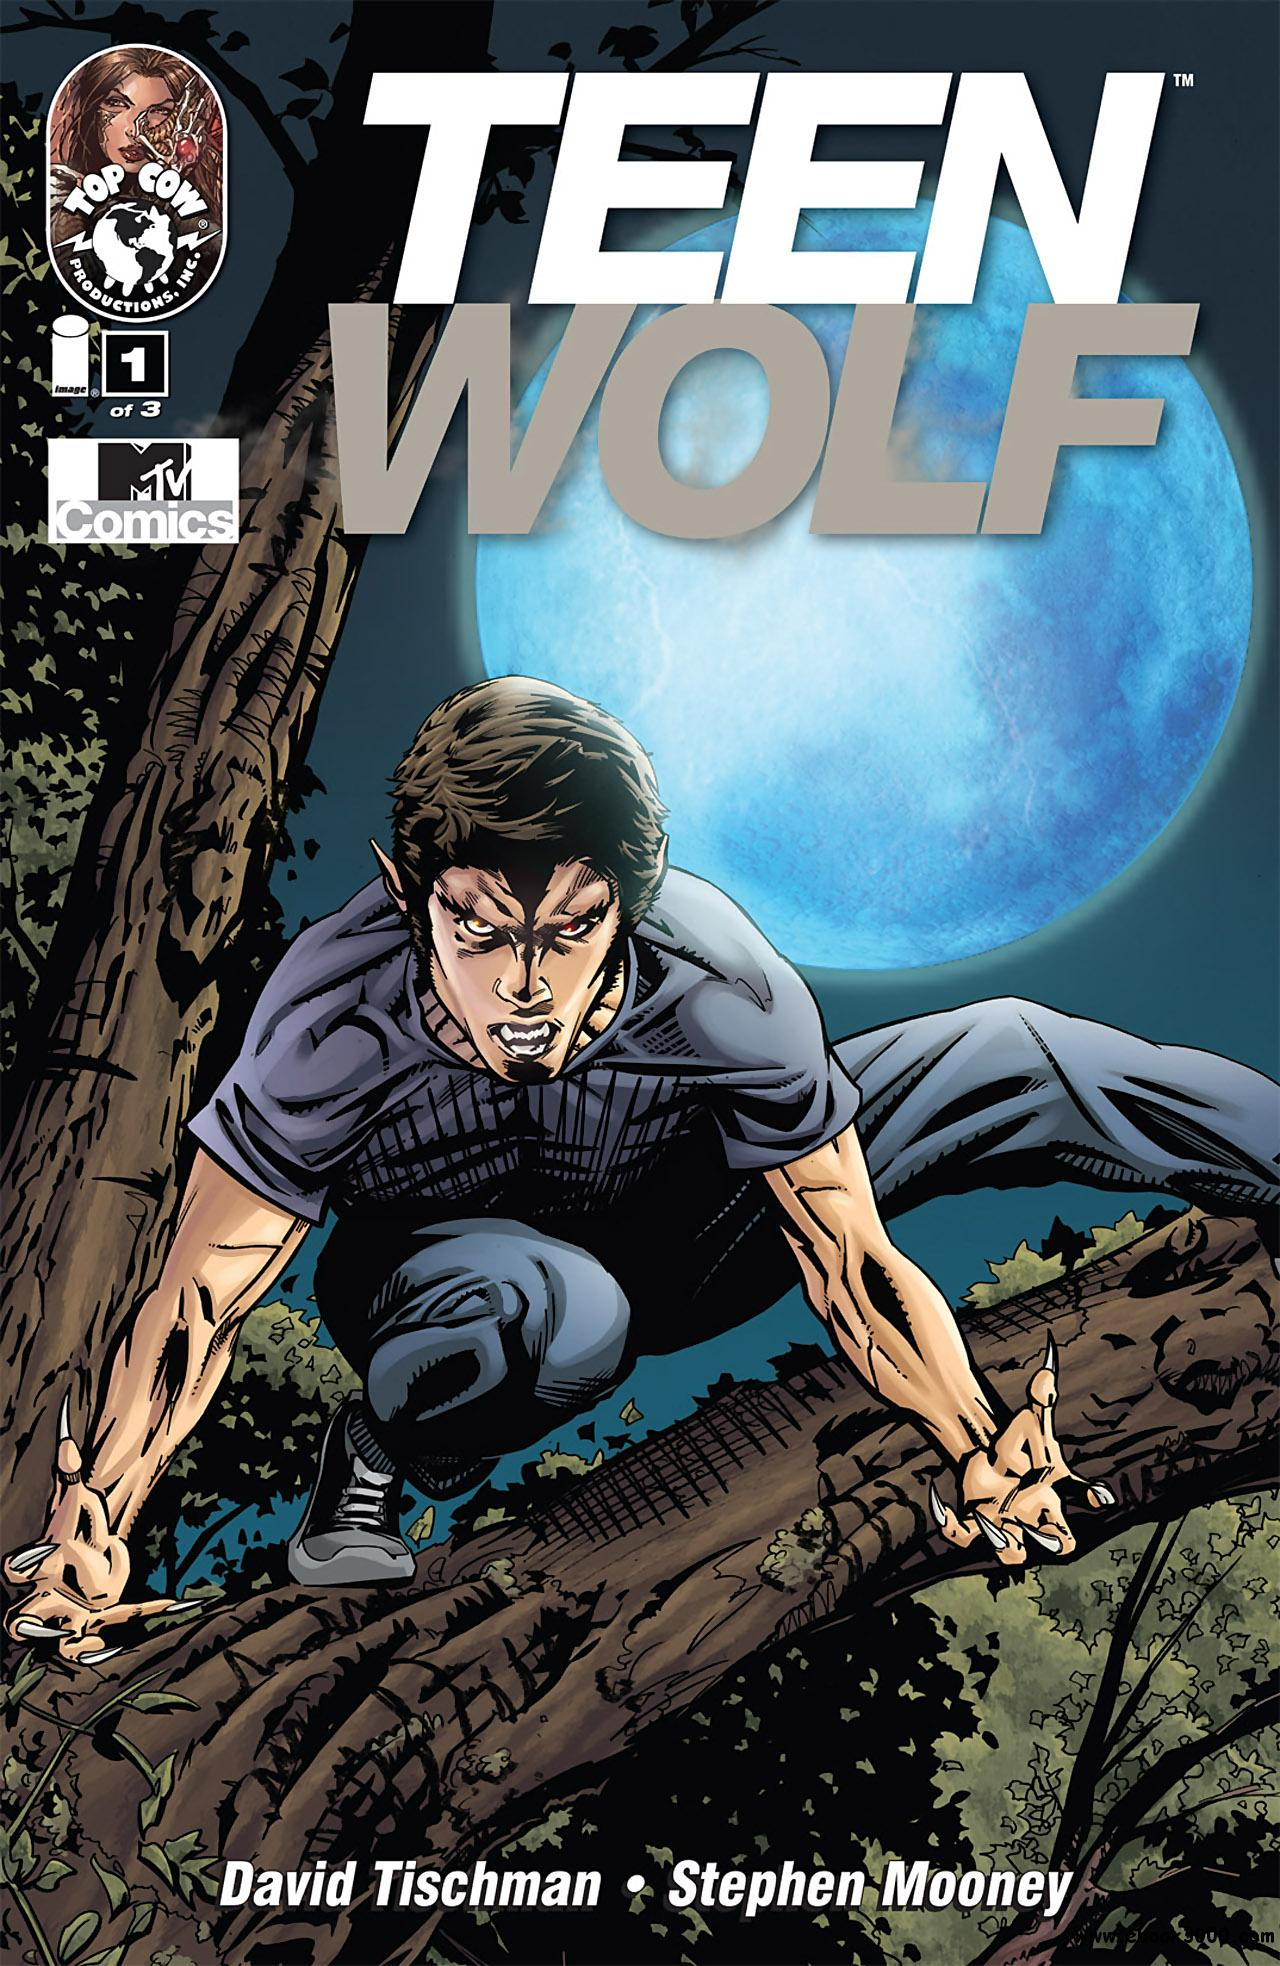 Teen Wolf #1 (2011) free download